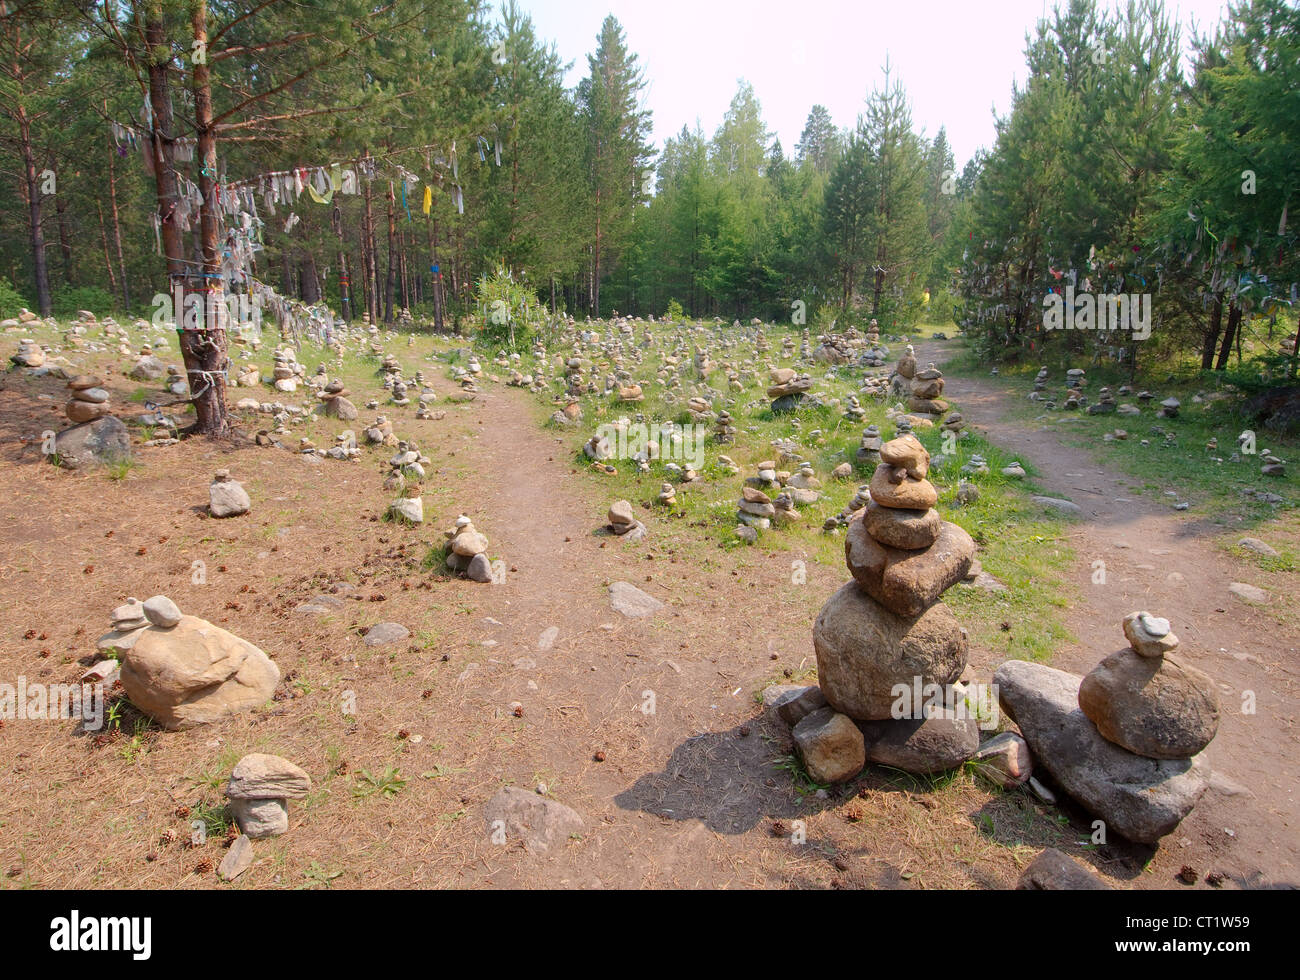 stones of fulfillment of desires, stone garden. Arshan, Tunkinsky District, Republic of Buryatia, Siberia, Russian - Stock Image